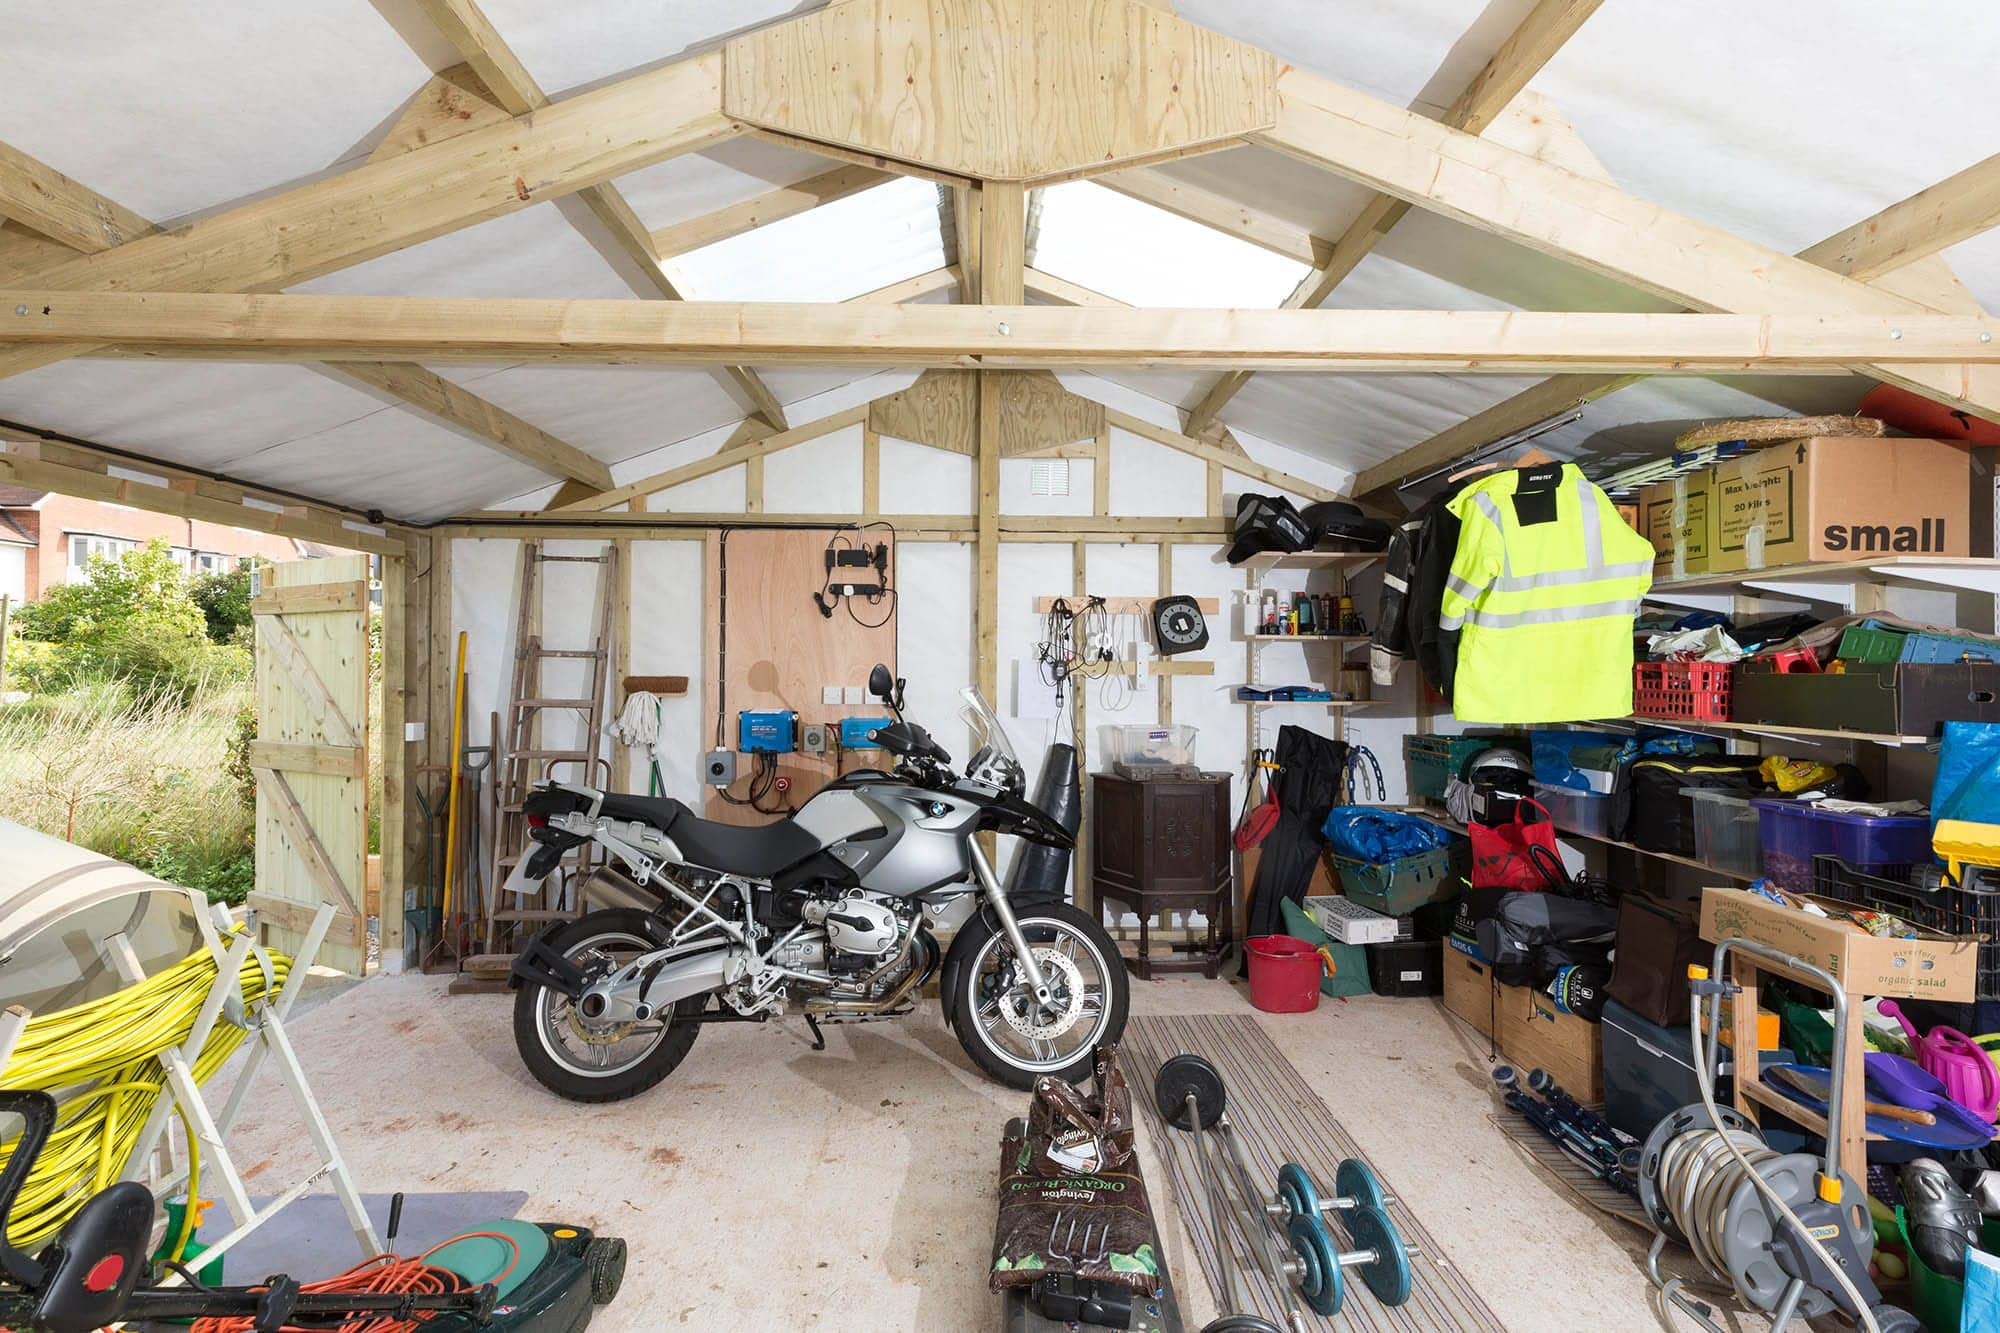 Inside view of custom wooden garage